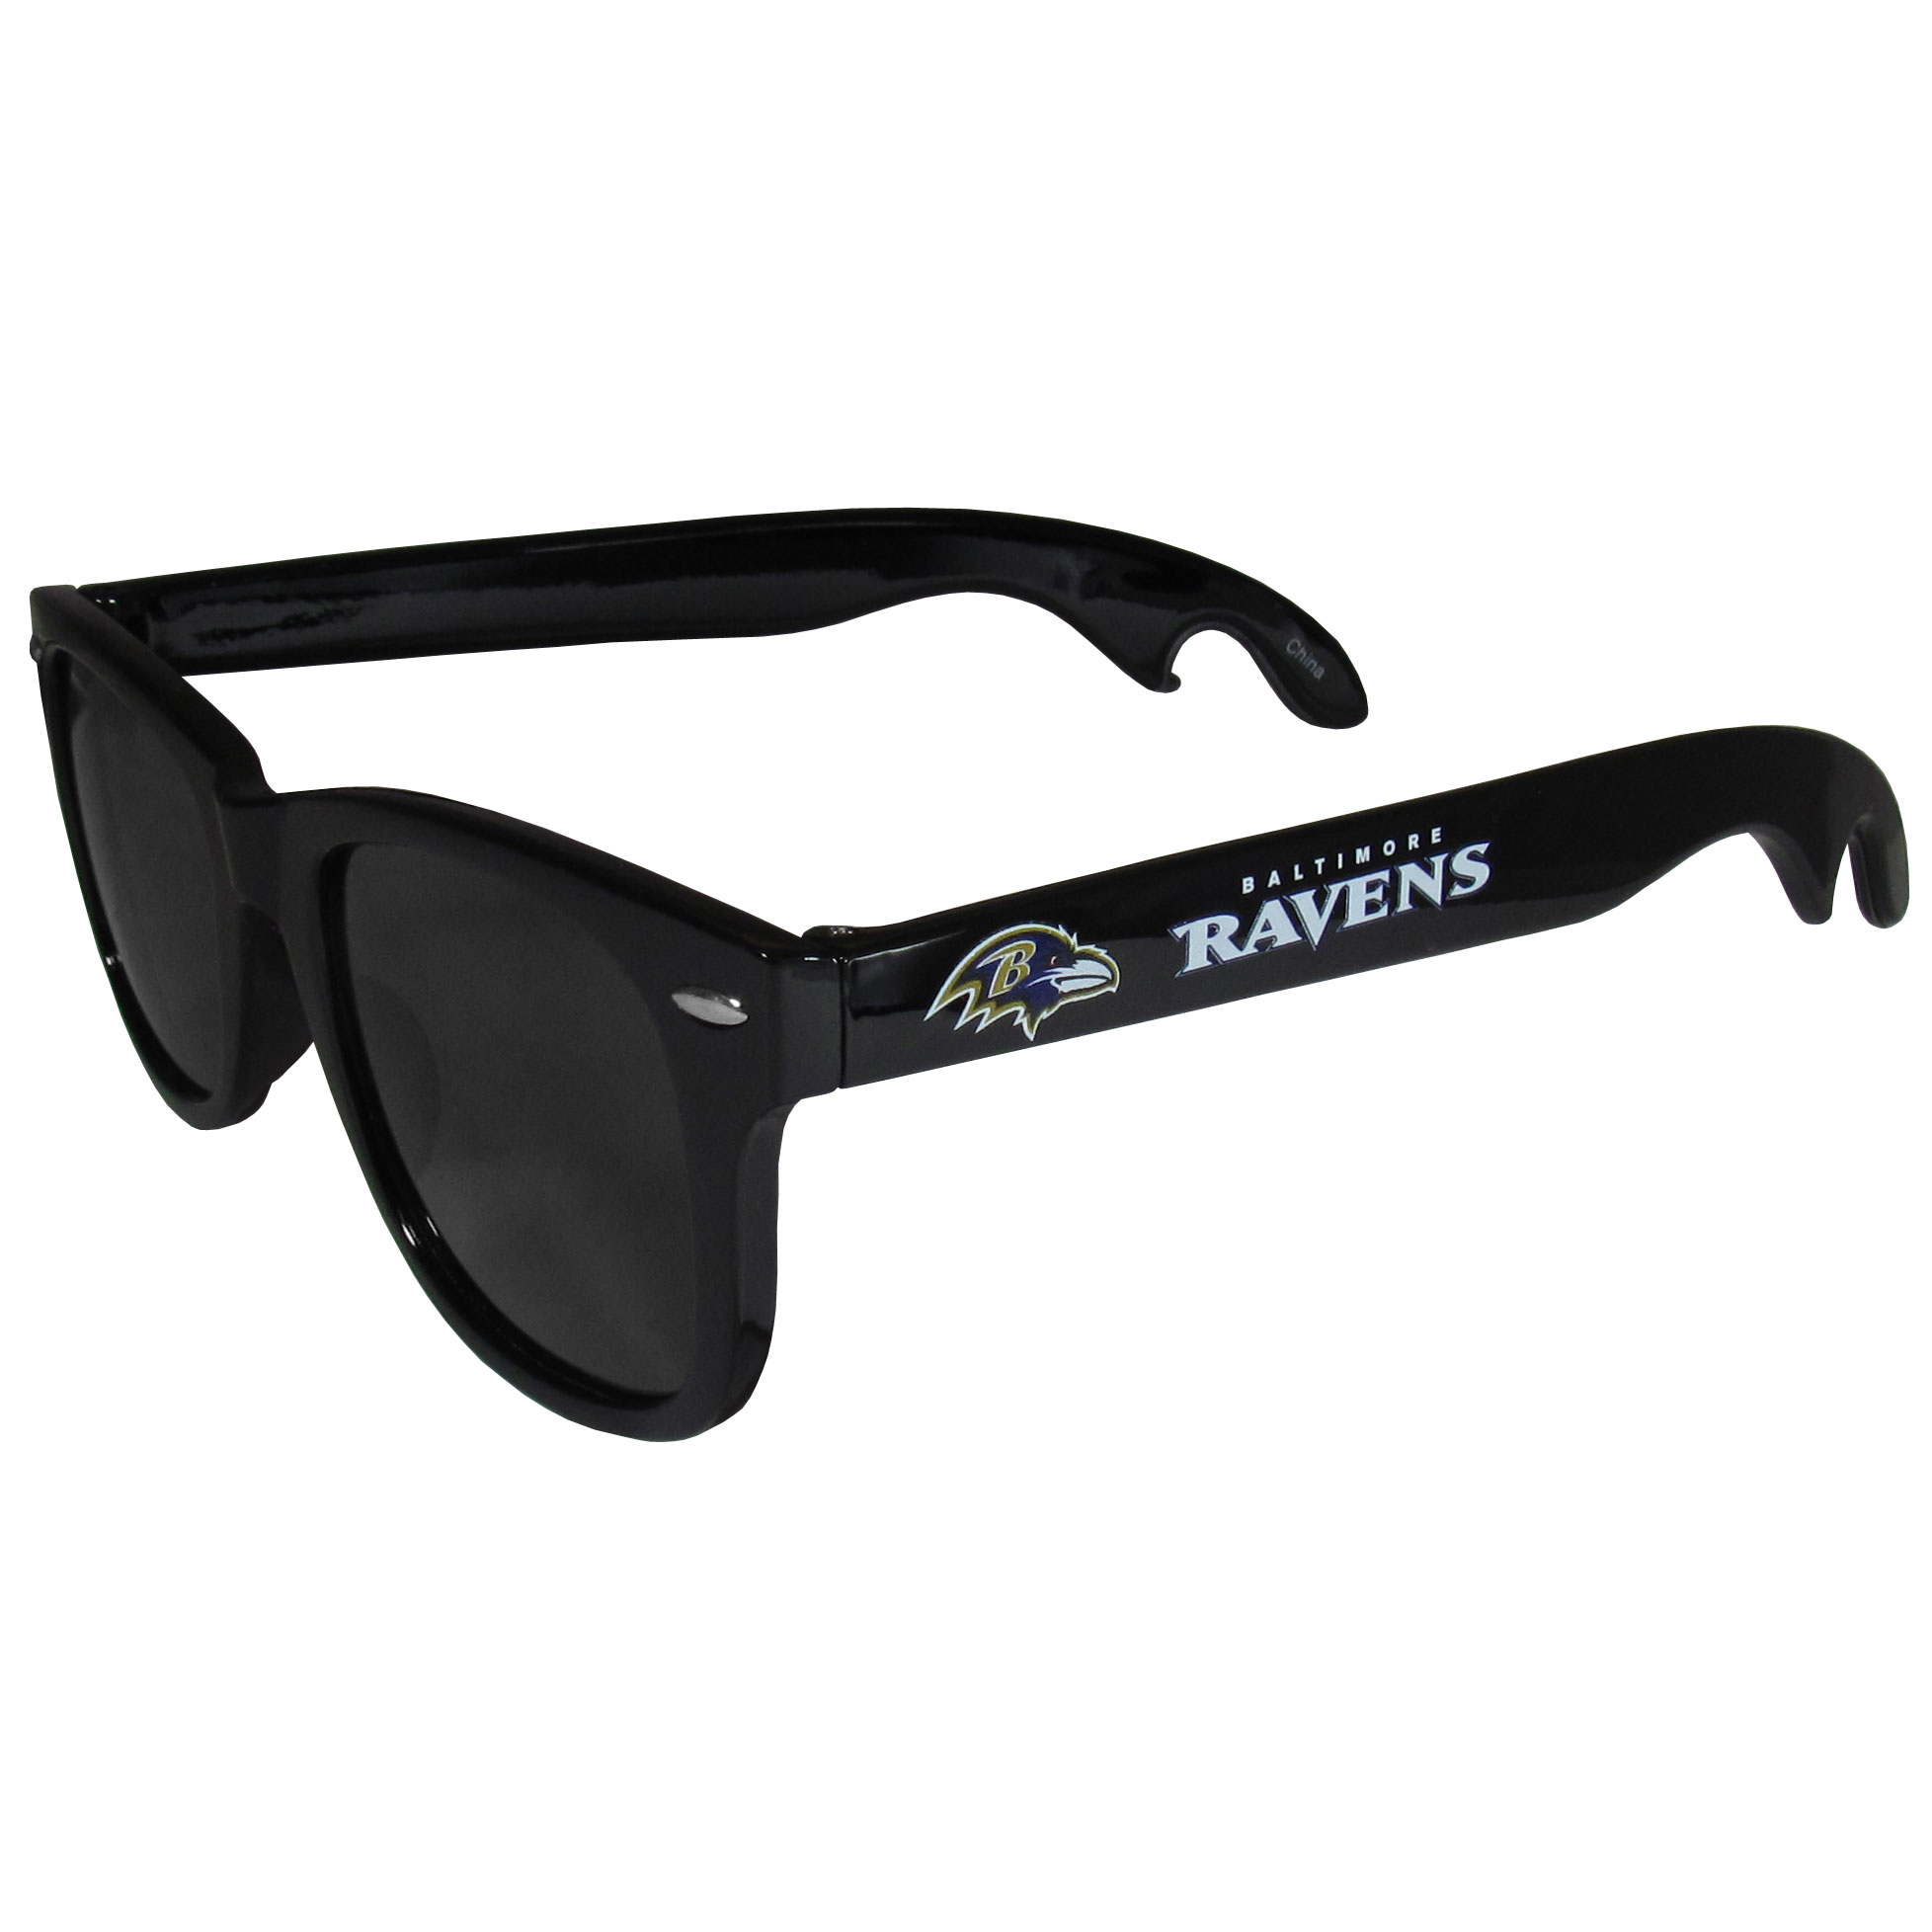 Baltimore Ravens Beachfarer Bottle Opener Sunglasses - Seriously, these sunglasses open bottles! Keep the party going with these amazing Baltimore Ravens bottle opener sunglasses. The stylish retro frames feature team designs on the arms and functional bottle openers on the end of the arms. Whether you are at the beach or having a backyard BBQ on game day, these shades will keep your eyes protected with 100% UVA/UVB protection and keep you hydrated with the handy bottle opener arms.